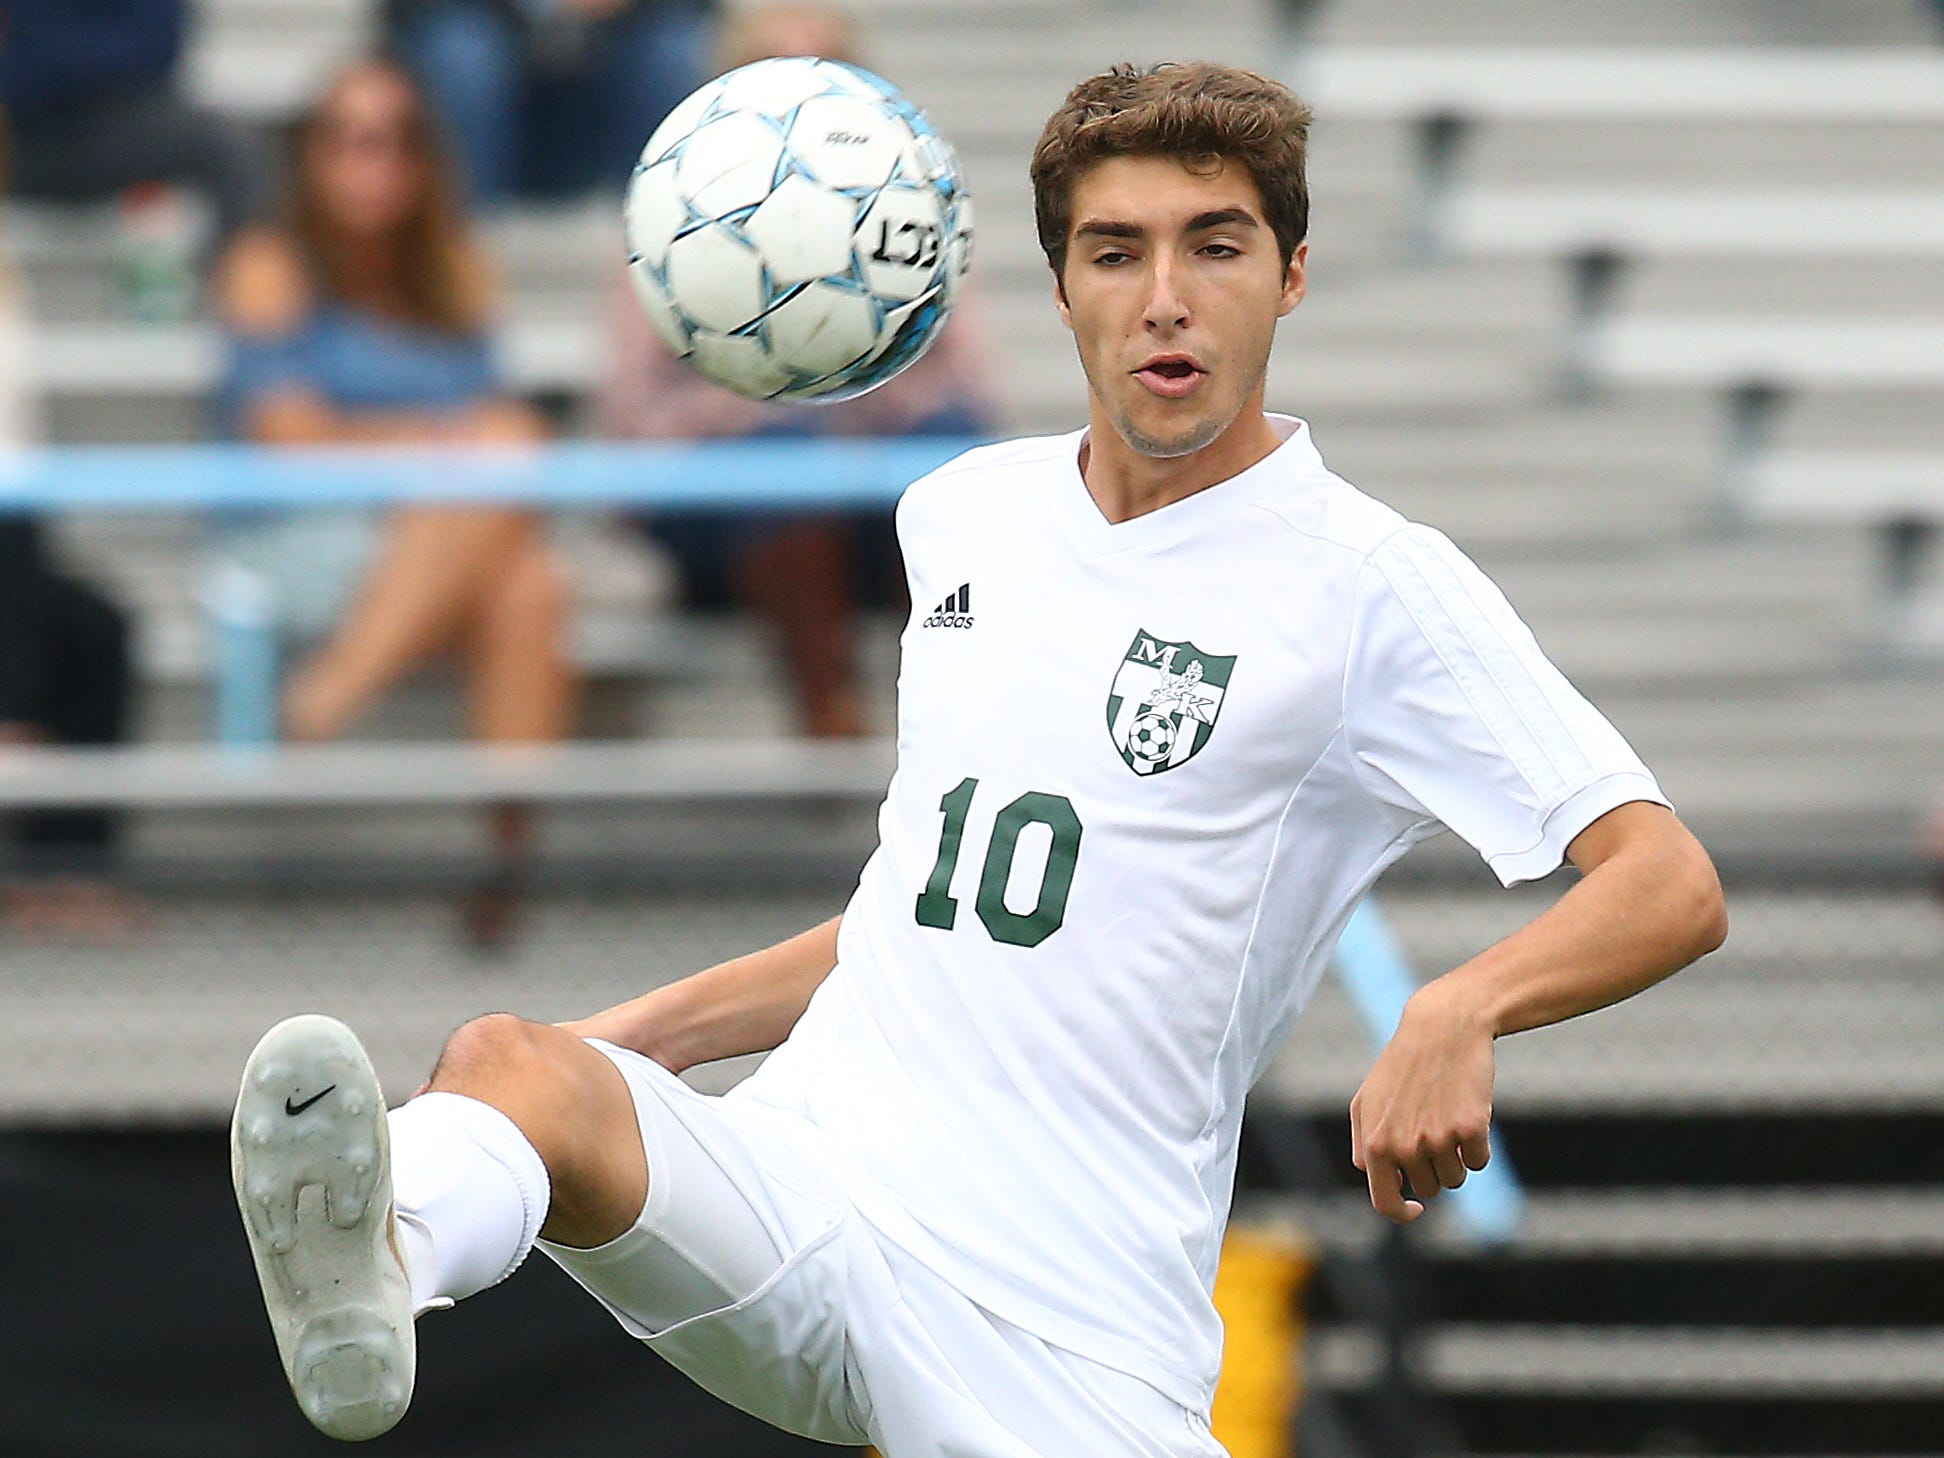 Morris Knolls senior Tommy Scalici vs. Parsippany Hills during their boys soccer match. September 27, 2018, Parsippany, NJ